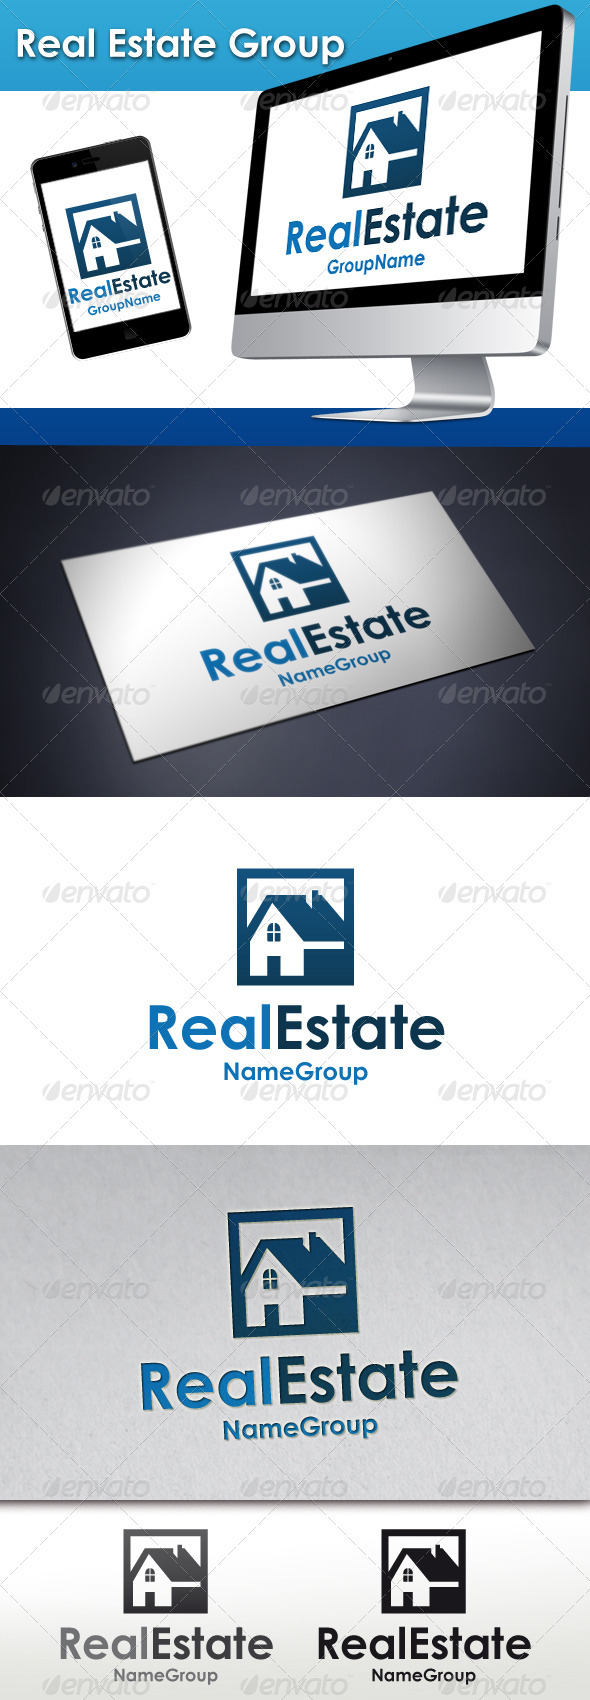 GraphicRiver Real Estate Group Logo 3408958